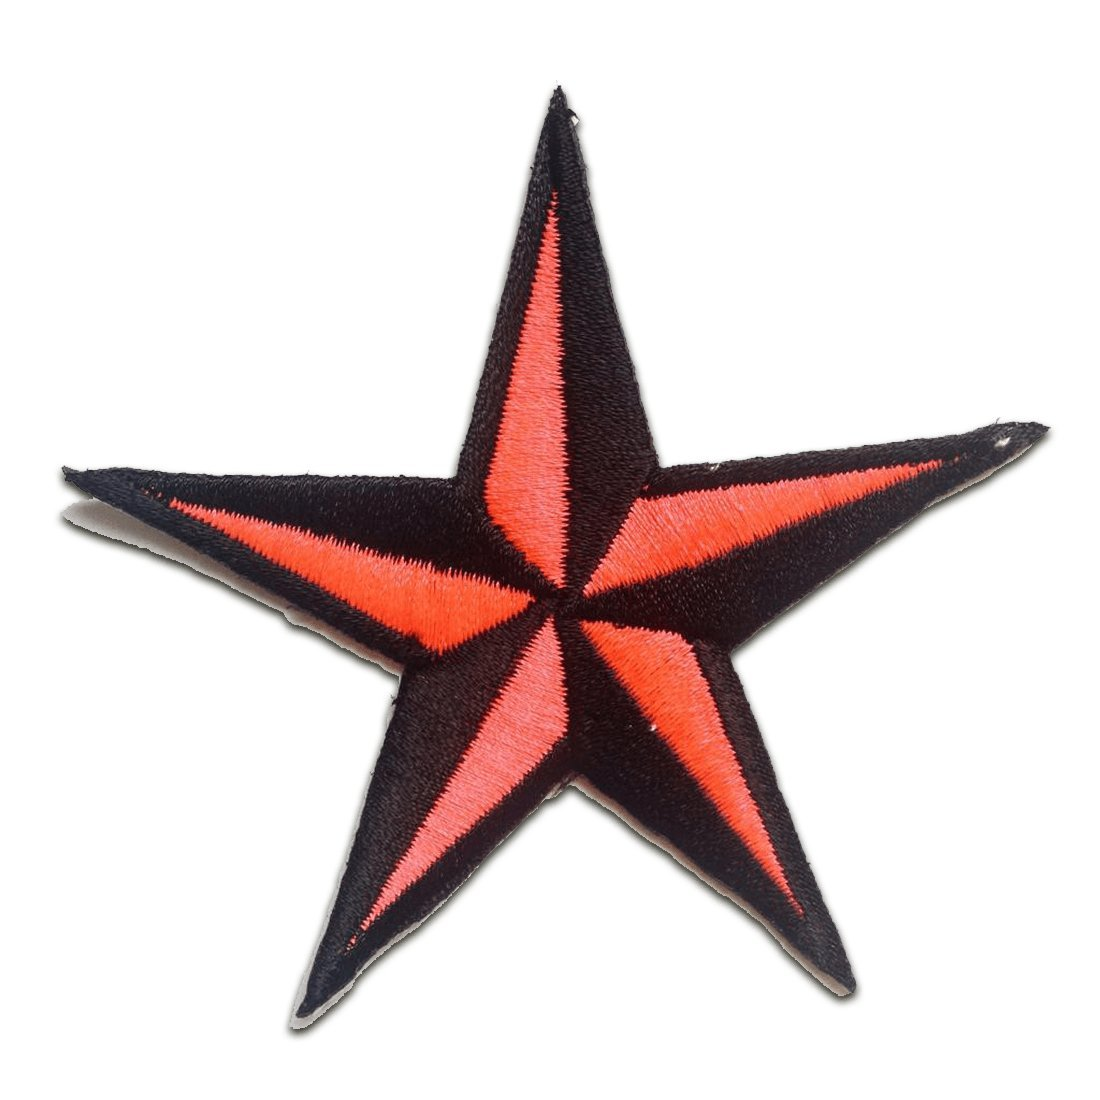 Iron on patches - Star - purple - 7, 5x7, 5cm - Application Embroided patch badges by Catch-the-Patch.de